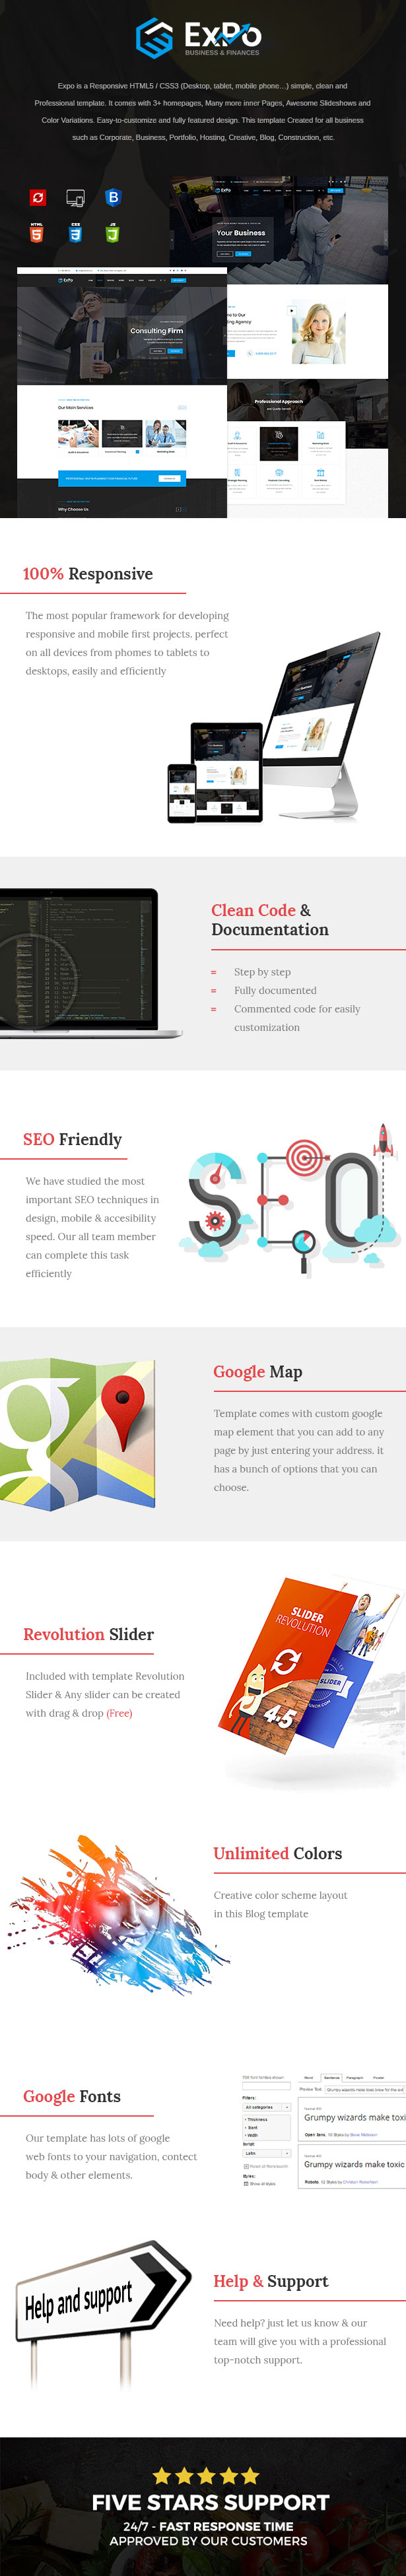 Expo - Finance, Business & Consulting HTML Template - 2